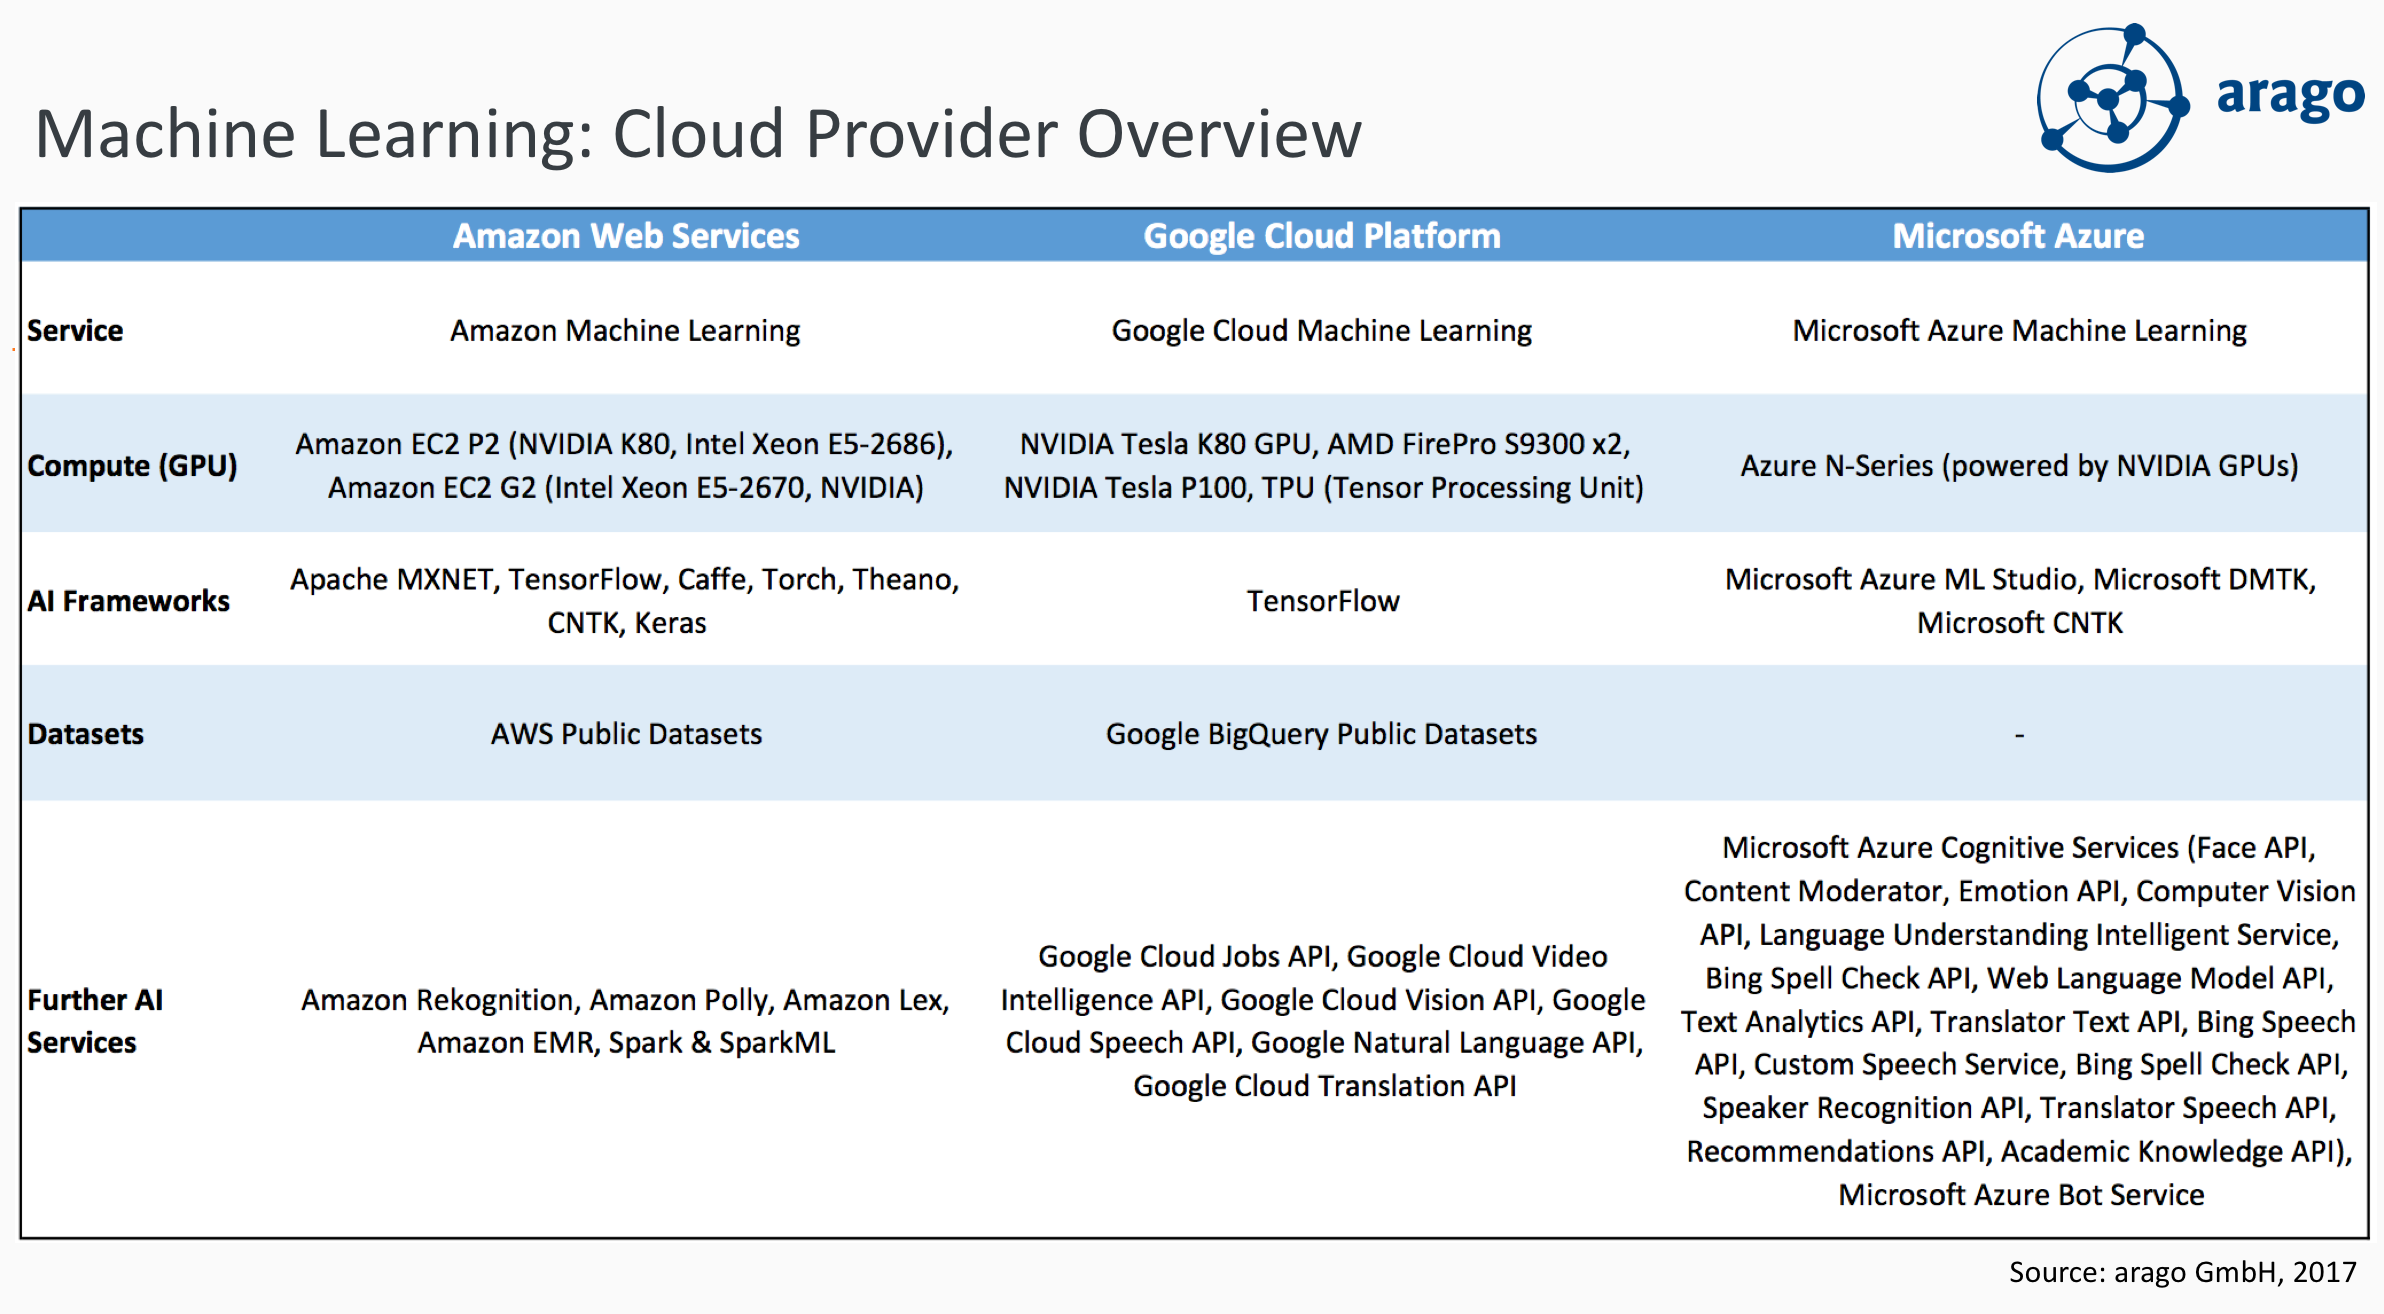 Figure: Machine Learning Cloud Provider Overview